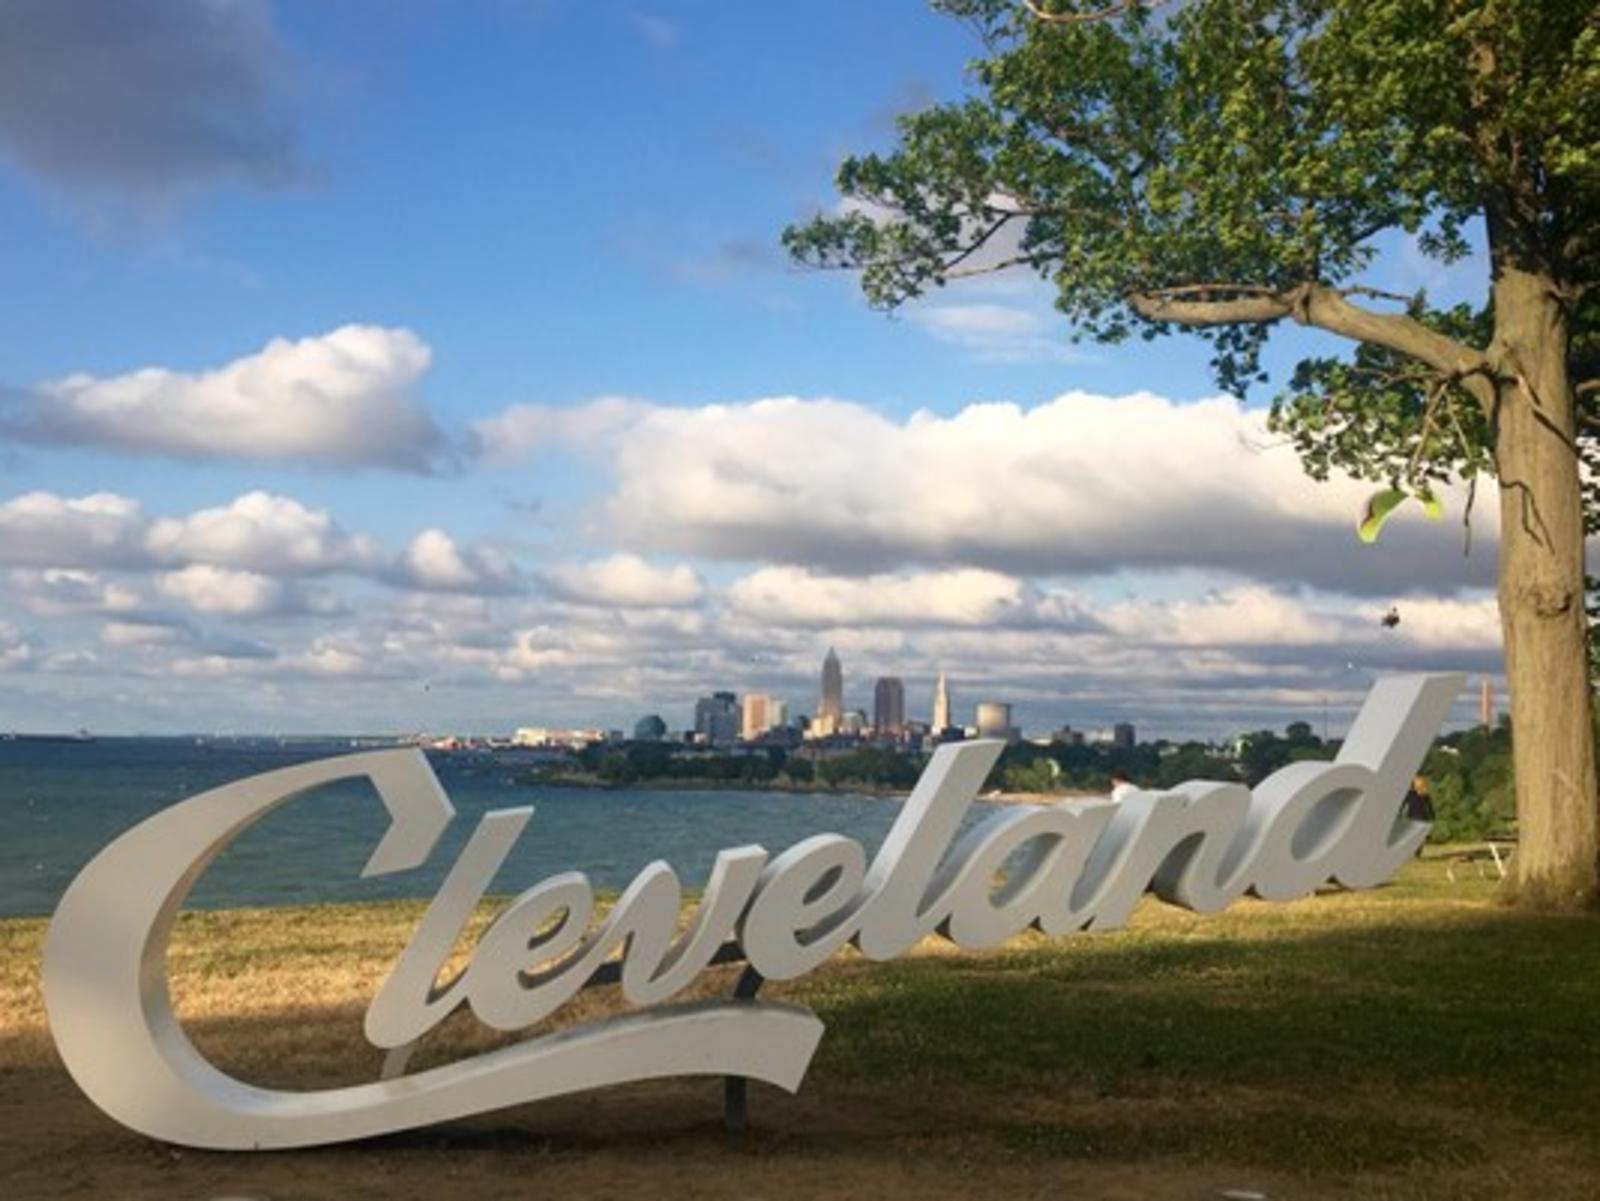 August 2017 Events in Cleveland, Ohio